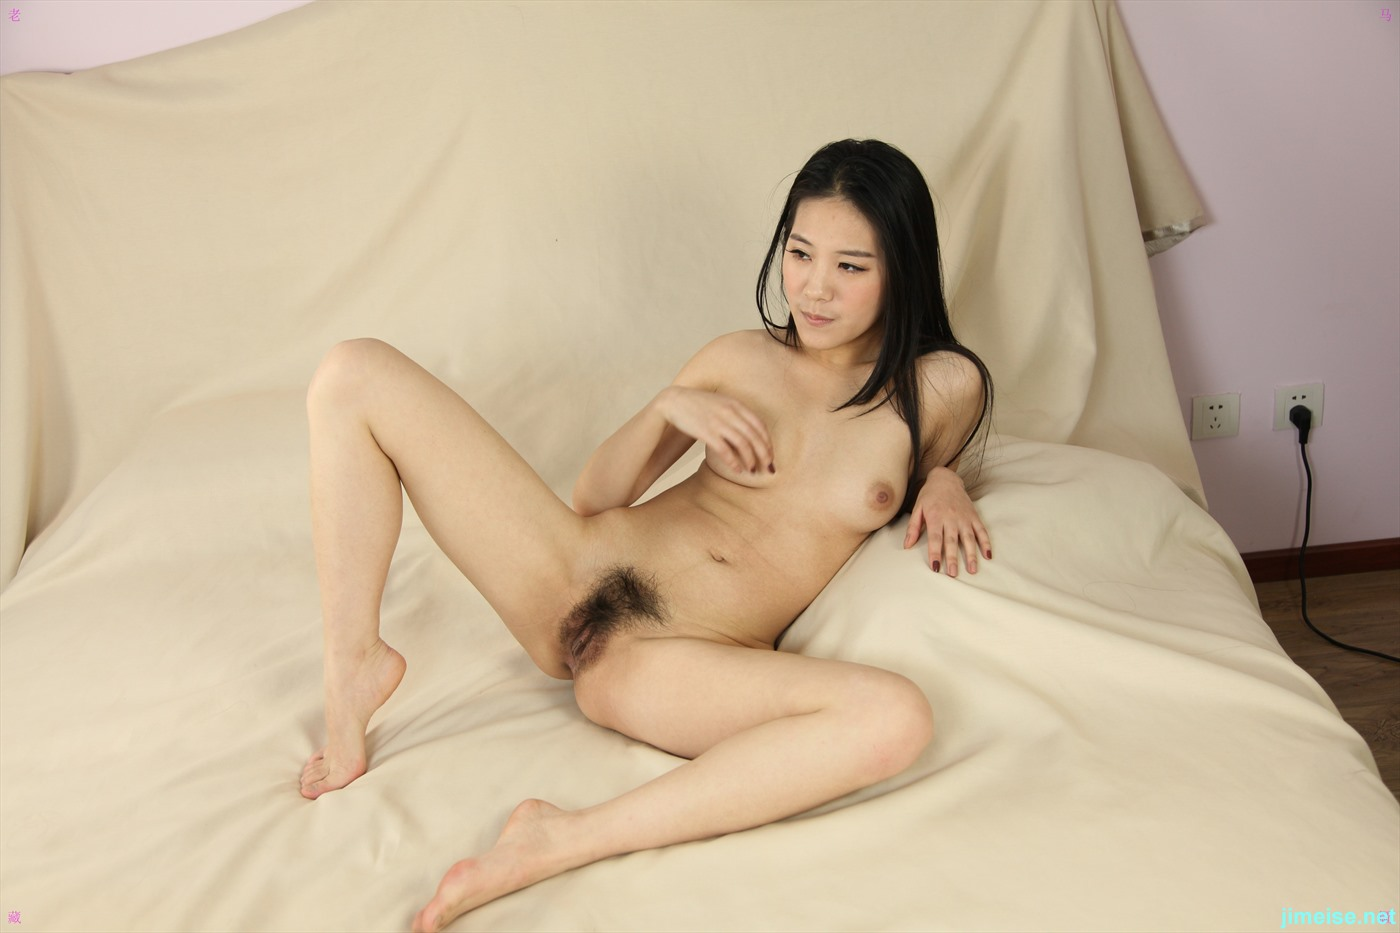 chinese nude xixi pussy img 5878 free erotic pictures